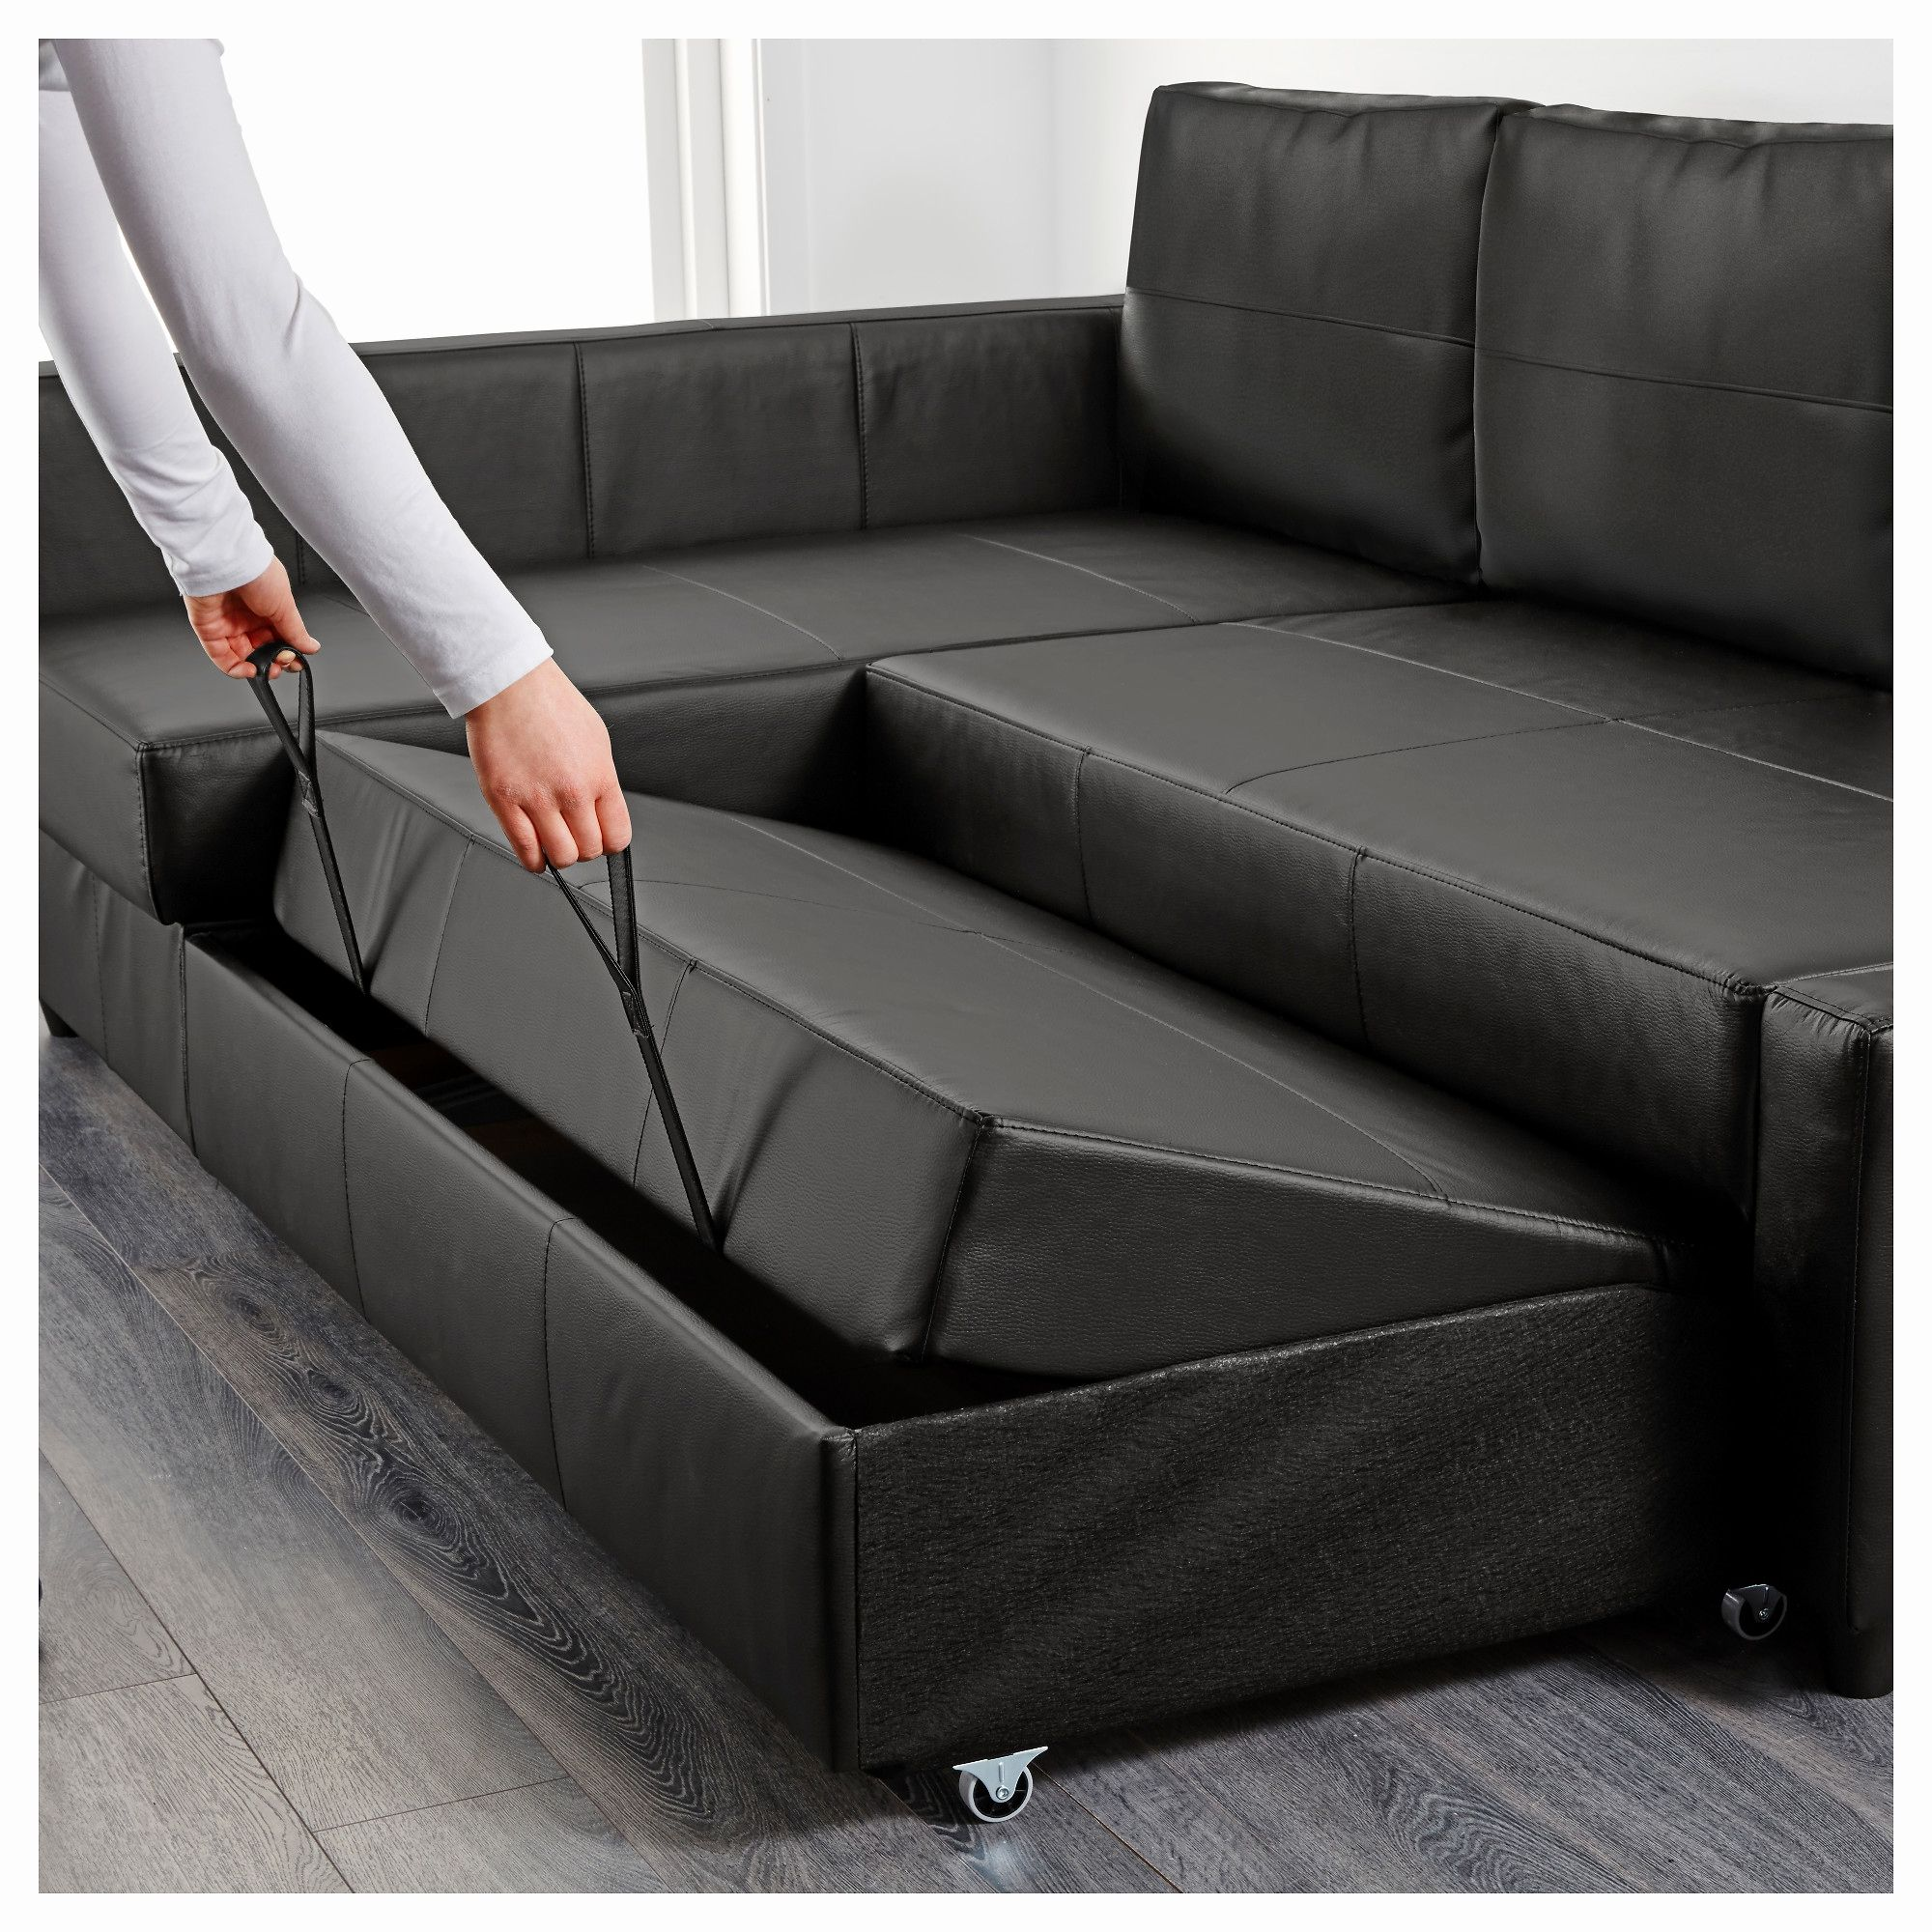 Unique Contemporary Leather Sofa Bed Art Sofa Good Looking Small